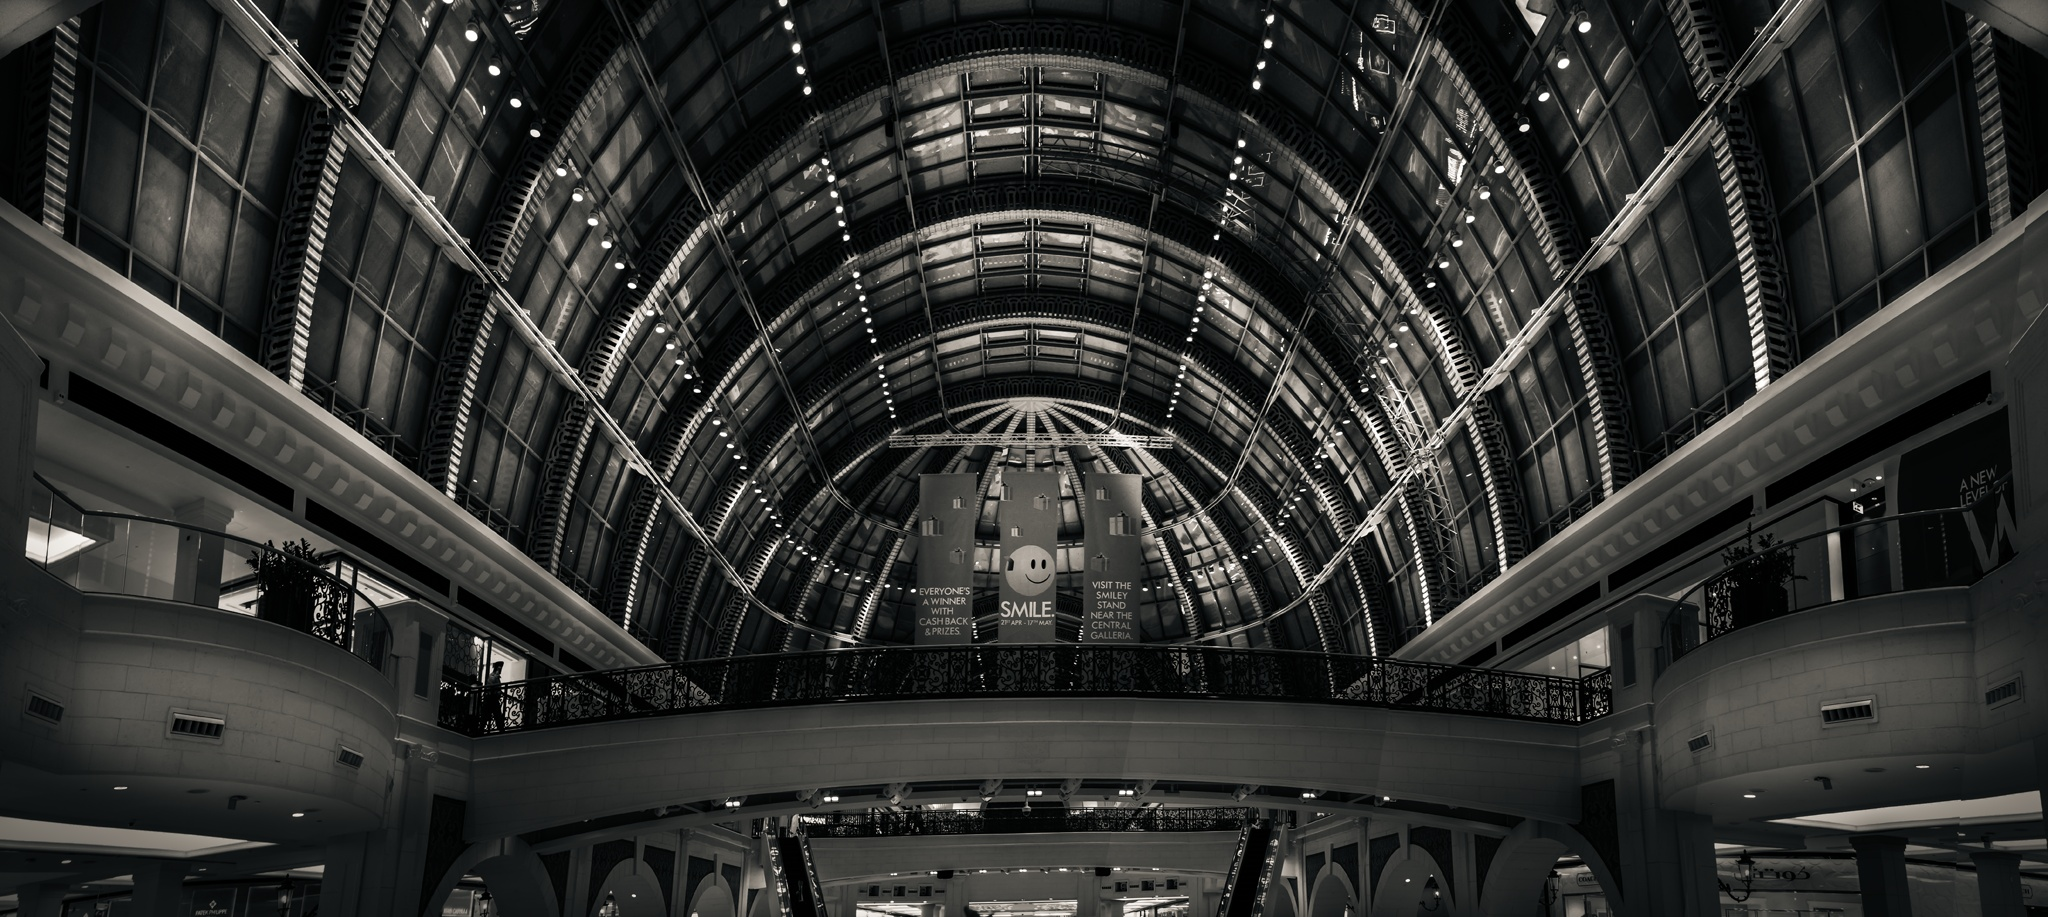 Mall of the Emirates by Ashraf Sabbah